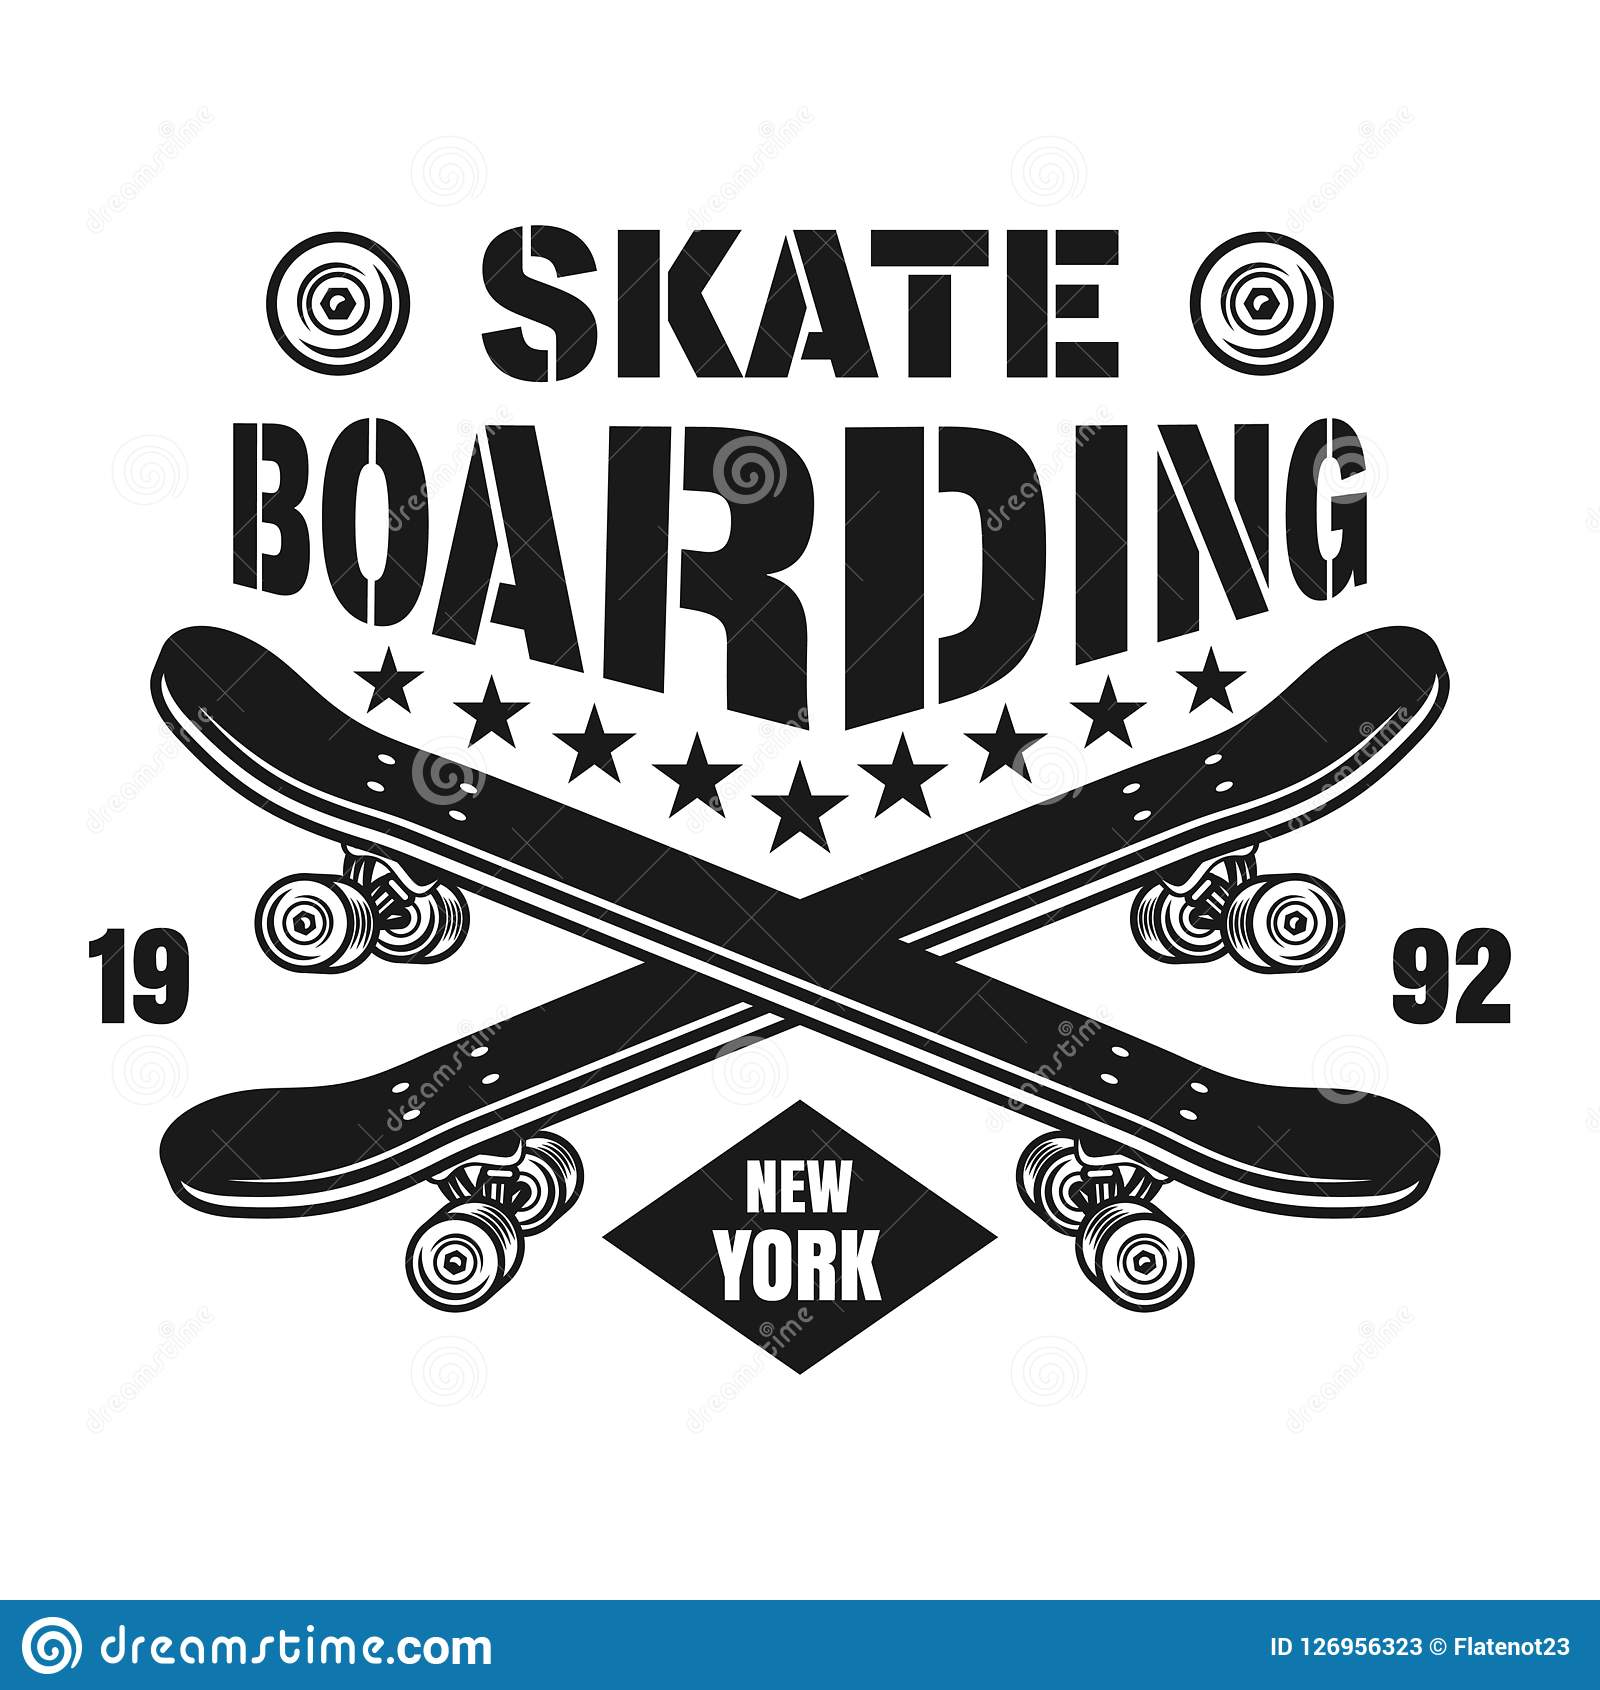 b97285e7 Skateboarding vector emblem with two crossed skate decks in vintage  monochrome style isolated on white background. More similar stock  illustrations